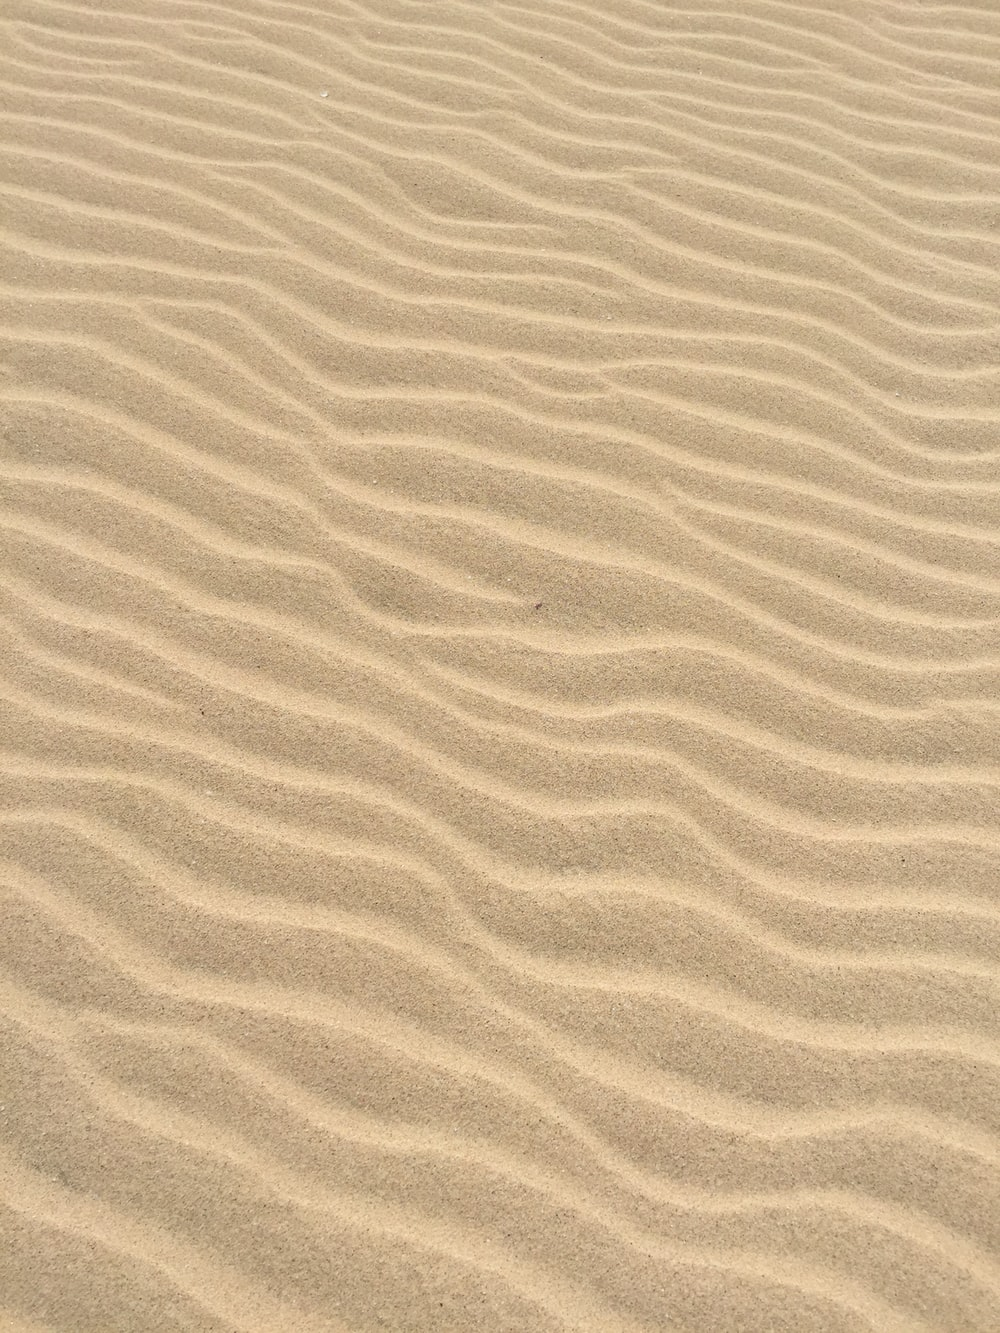 500 Sand Texture Pictures Hd Download Free Images On Unsplash